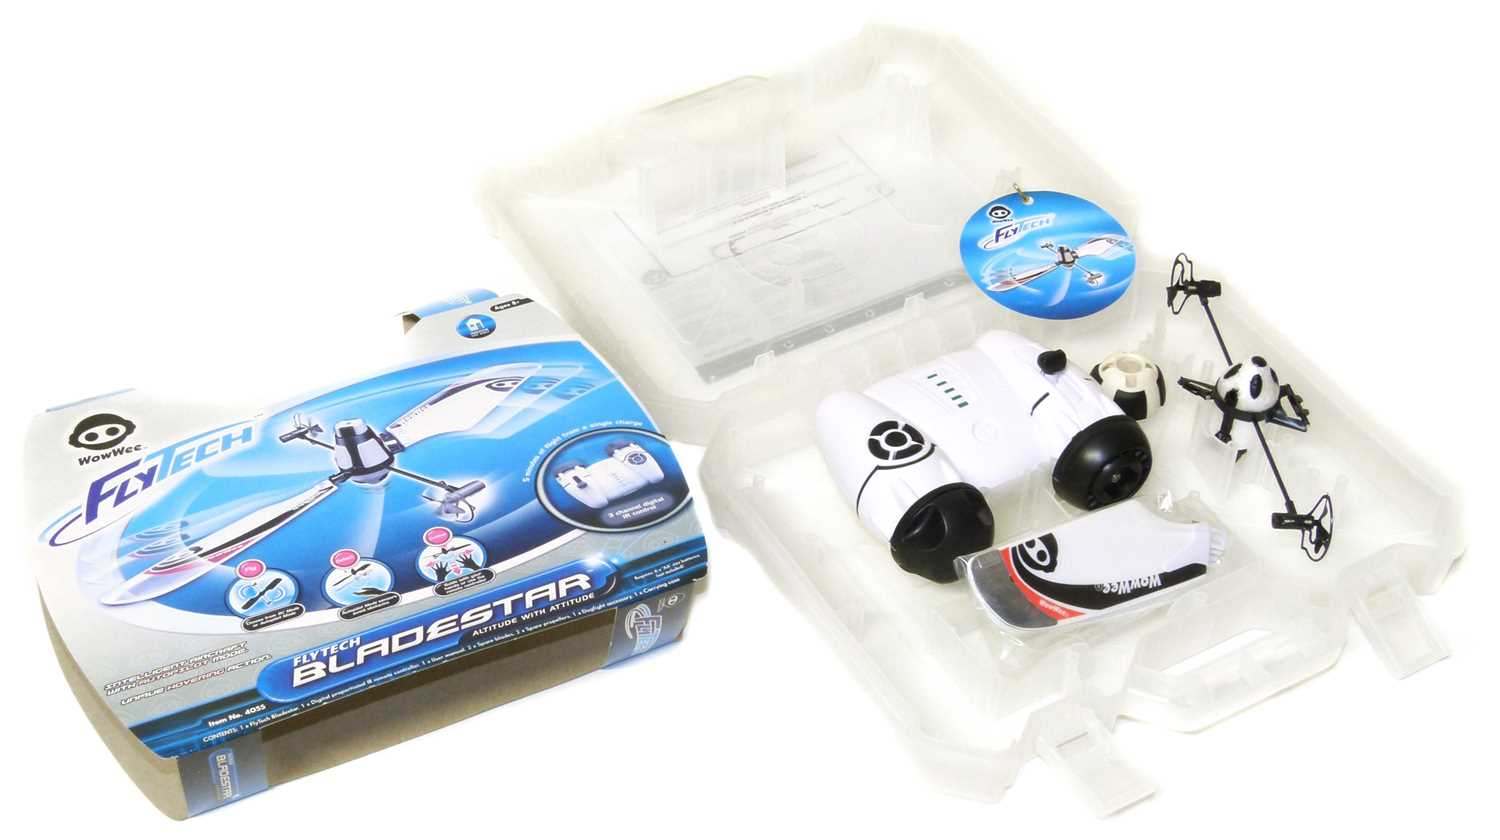 Lot 34-A remote controlled helicopter